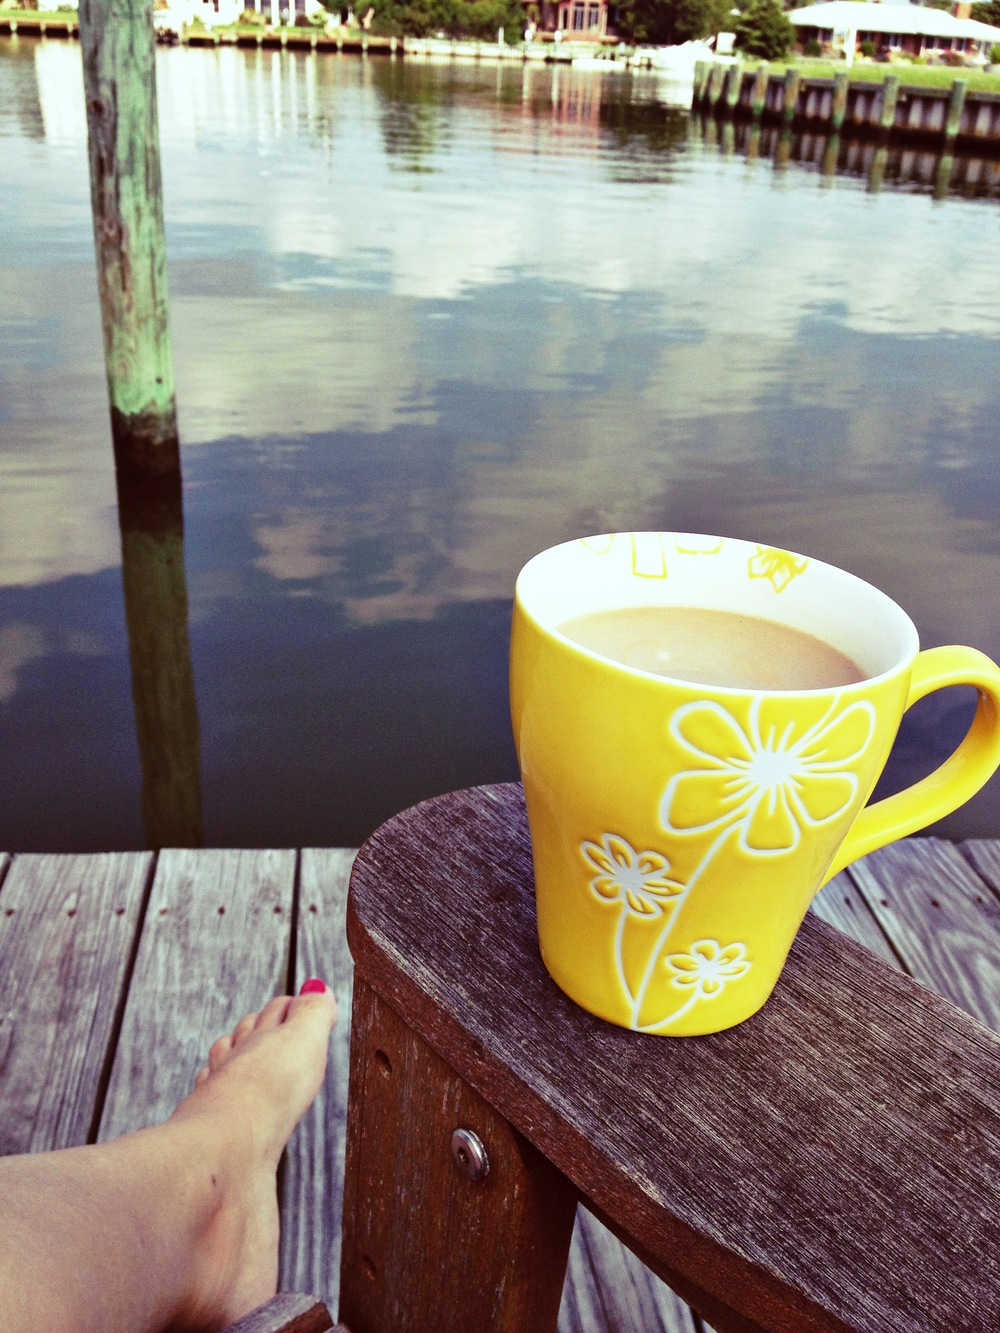 Morning coffee on my dock Ocean City, MD - July 2013